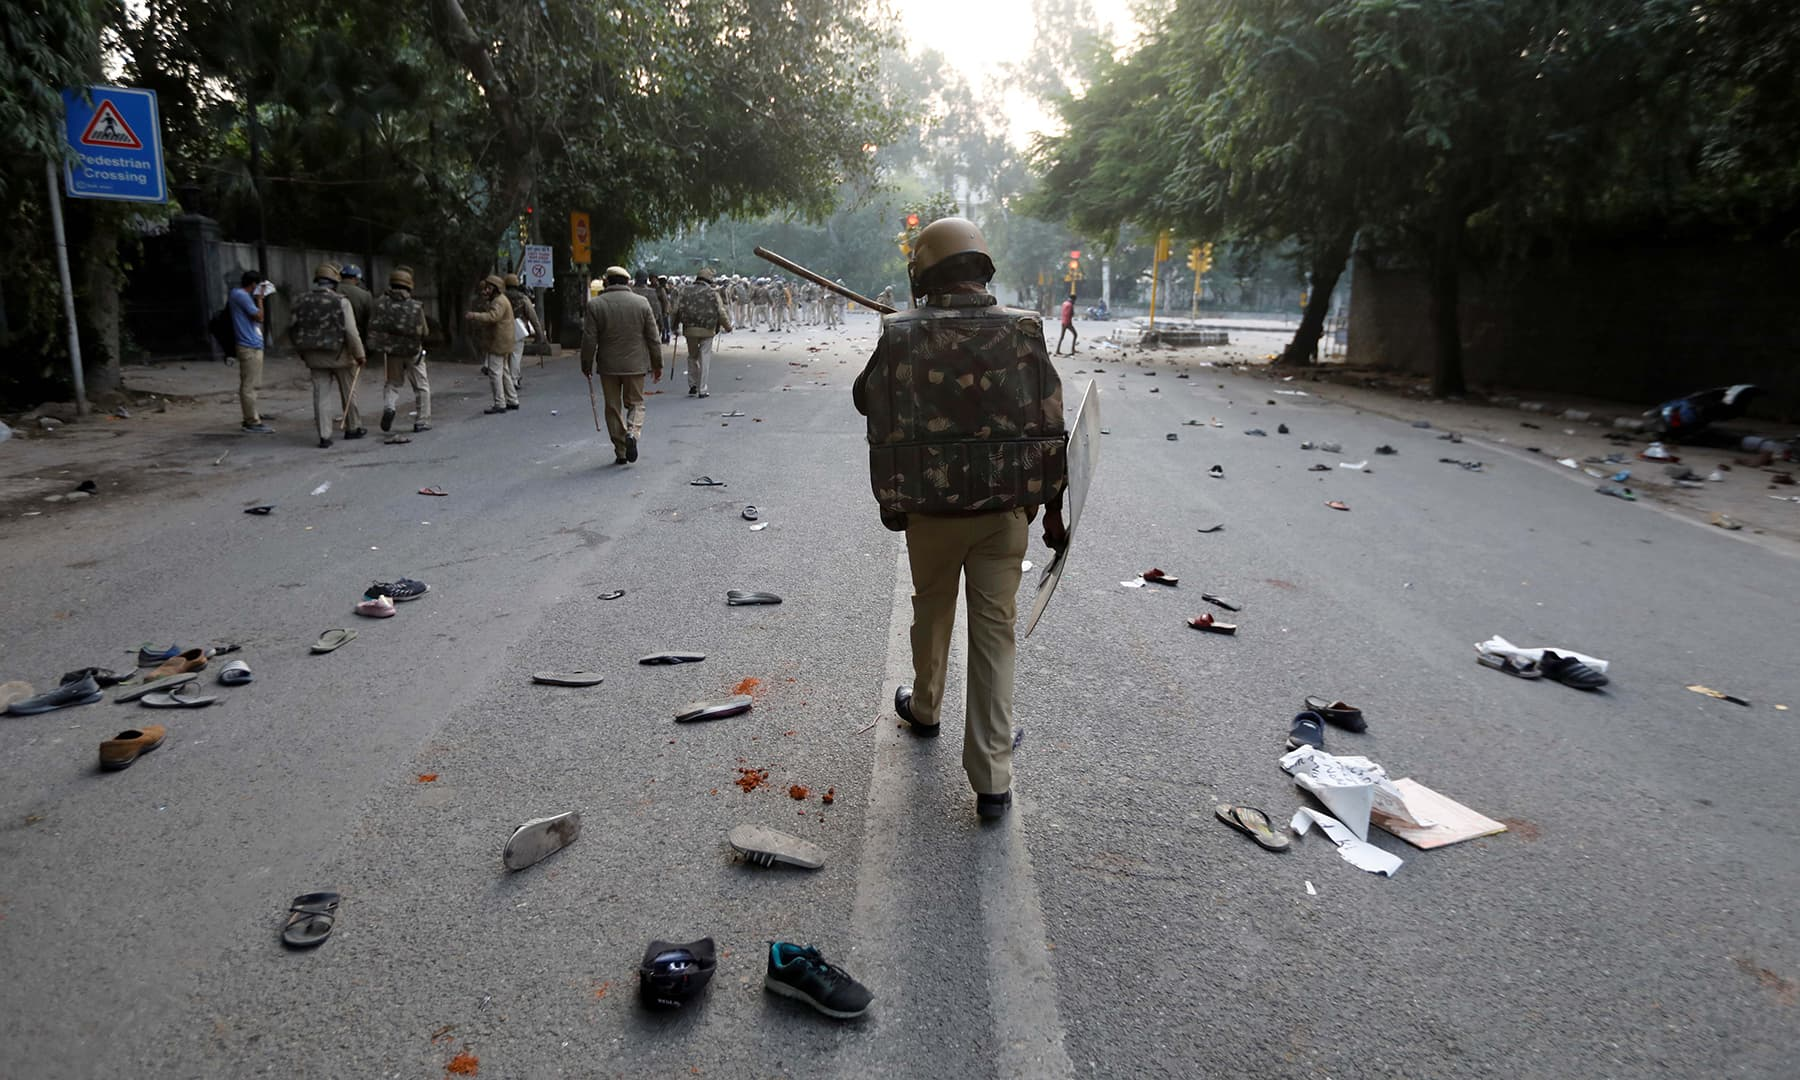 The shoes of demonstrators are seen scattered along the road as police patrol after a protest against a new citizenship law in New Delhi, India on Sunday. — Reuters